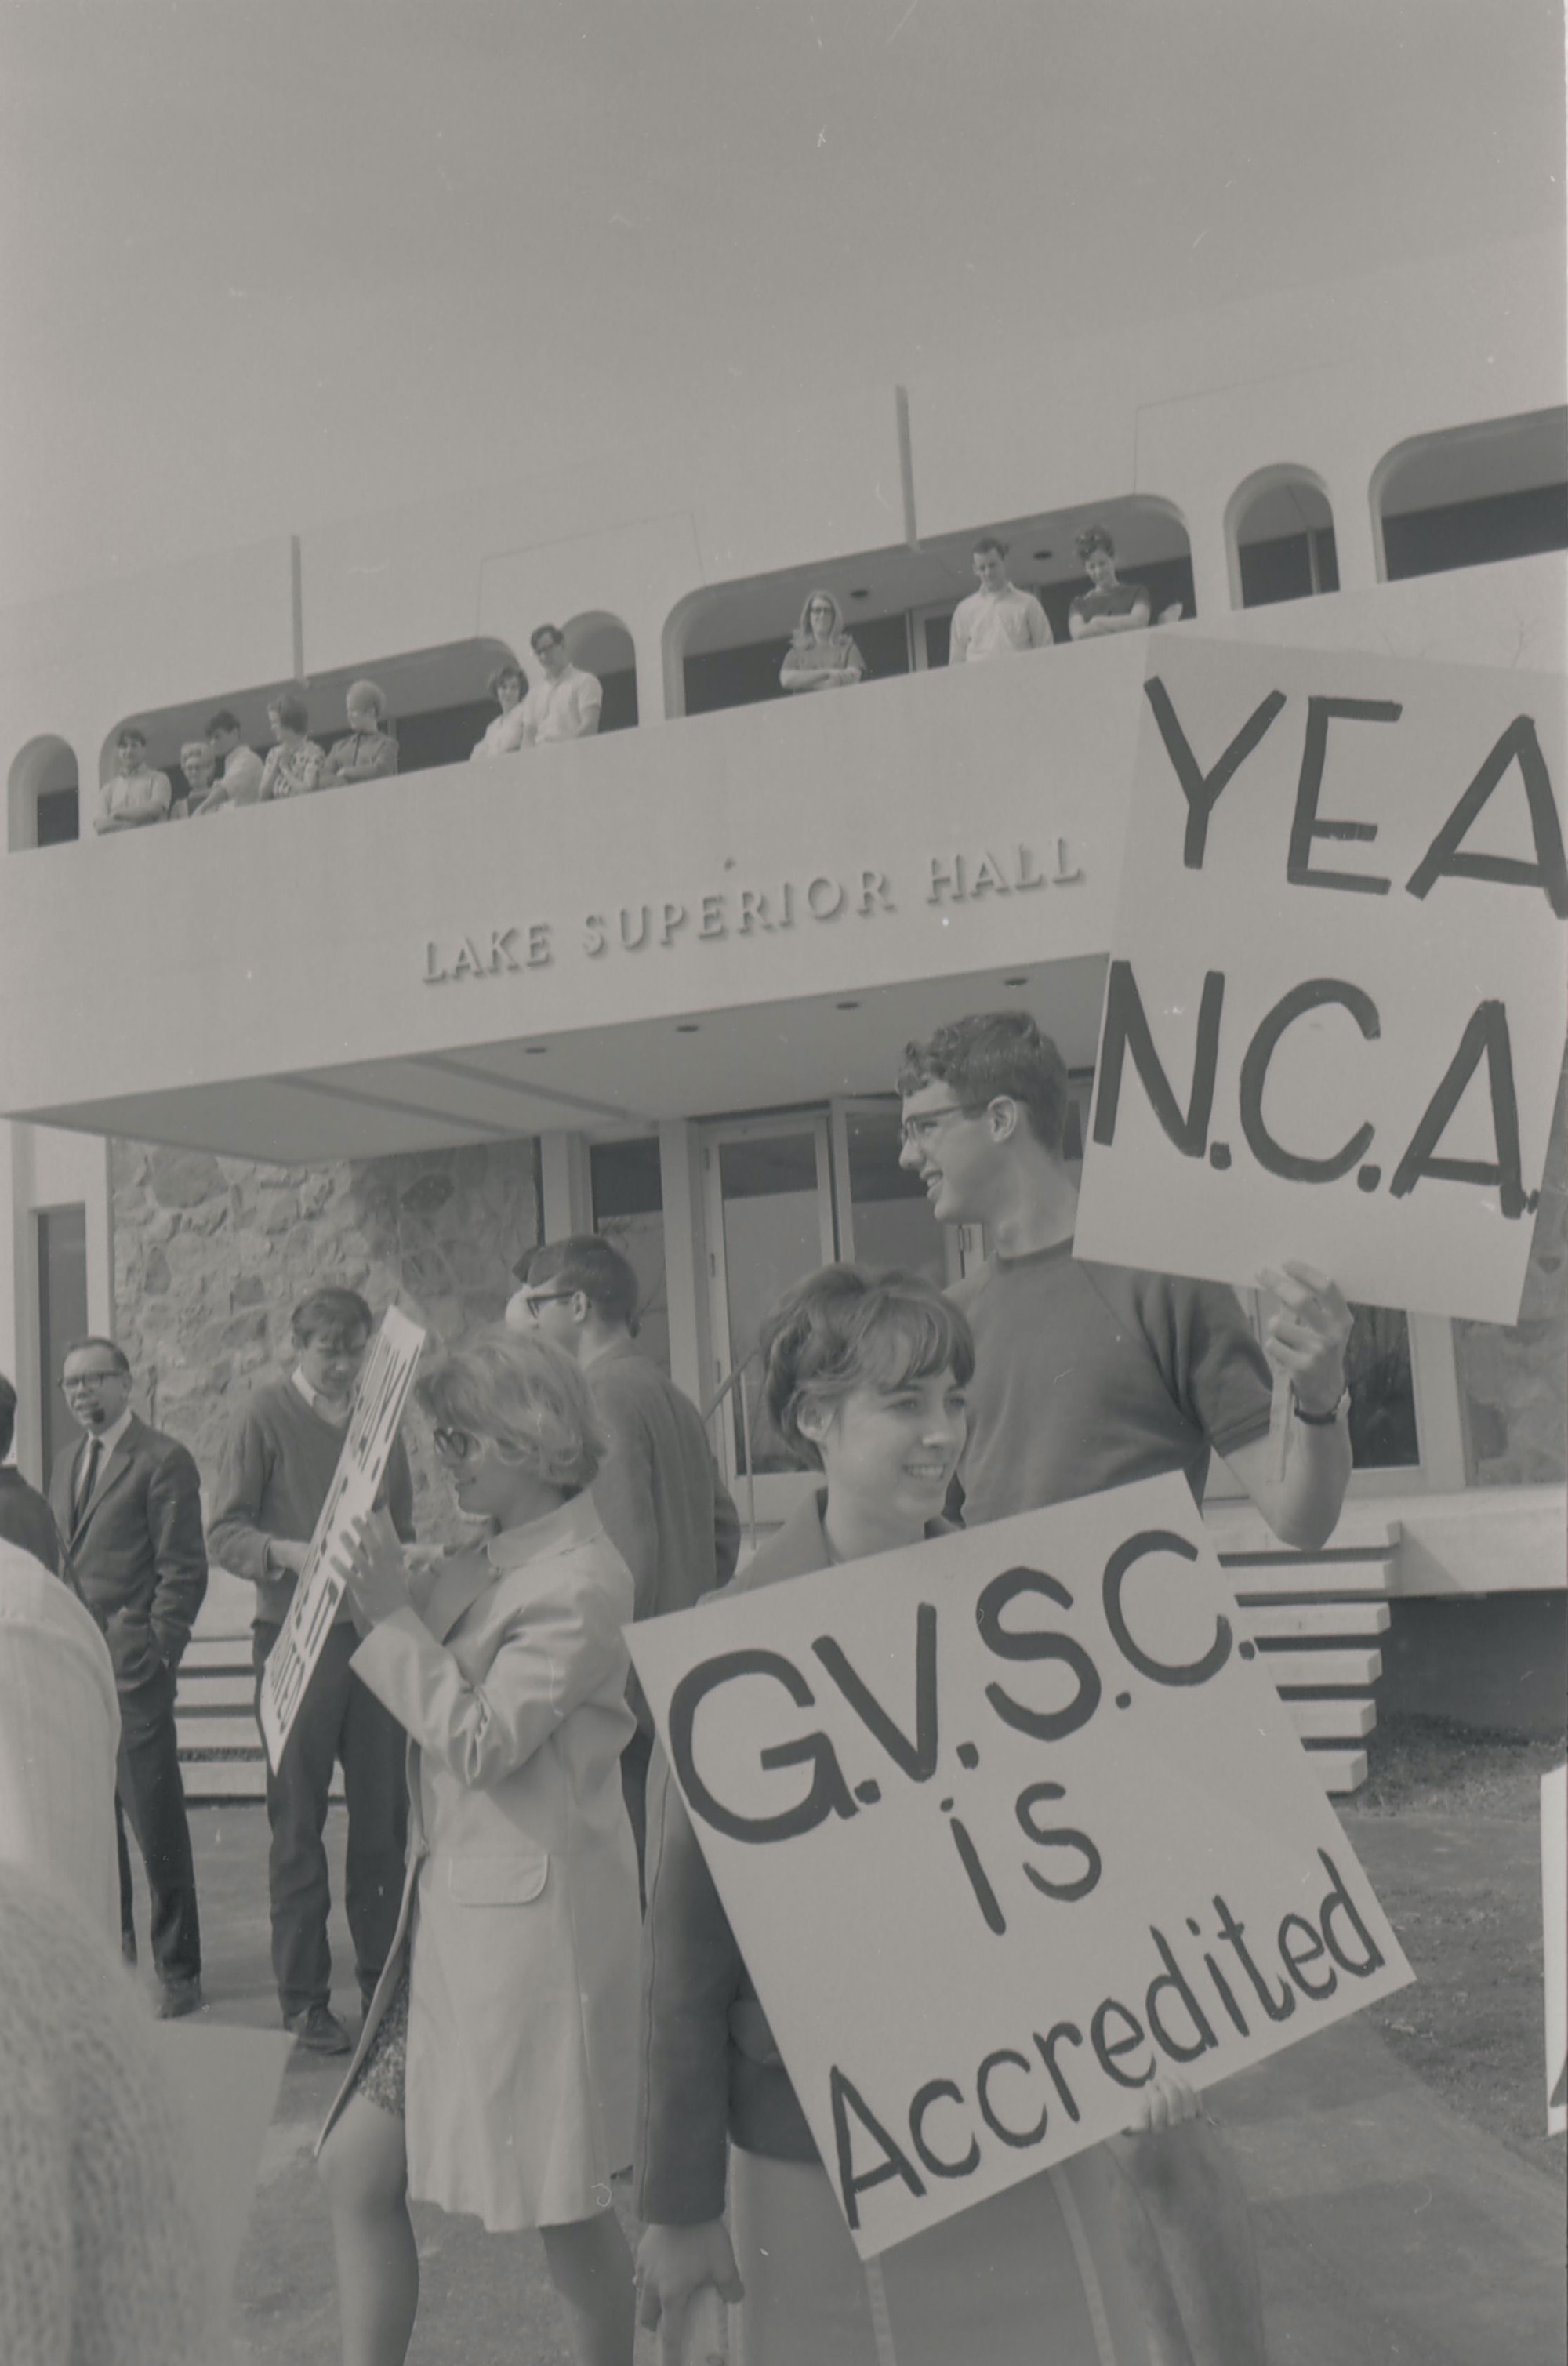 Students celebrate GVSCs accreditation, March 25, 1968.